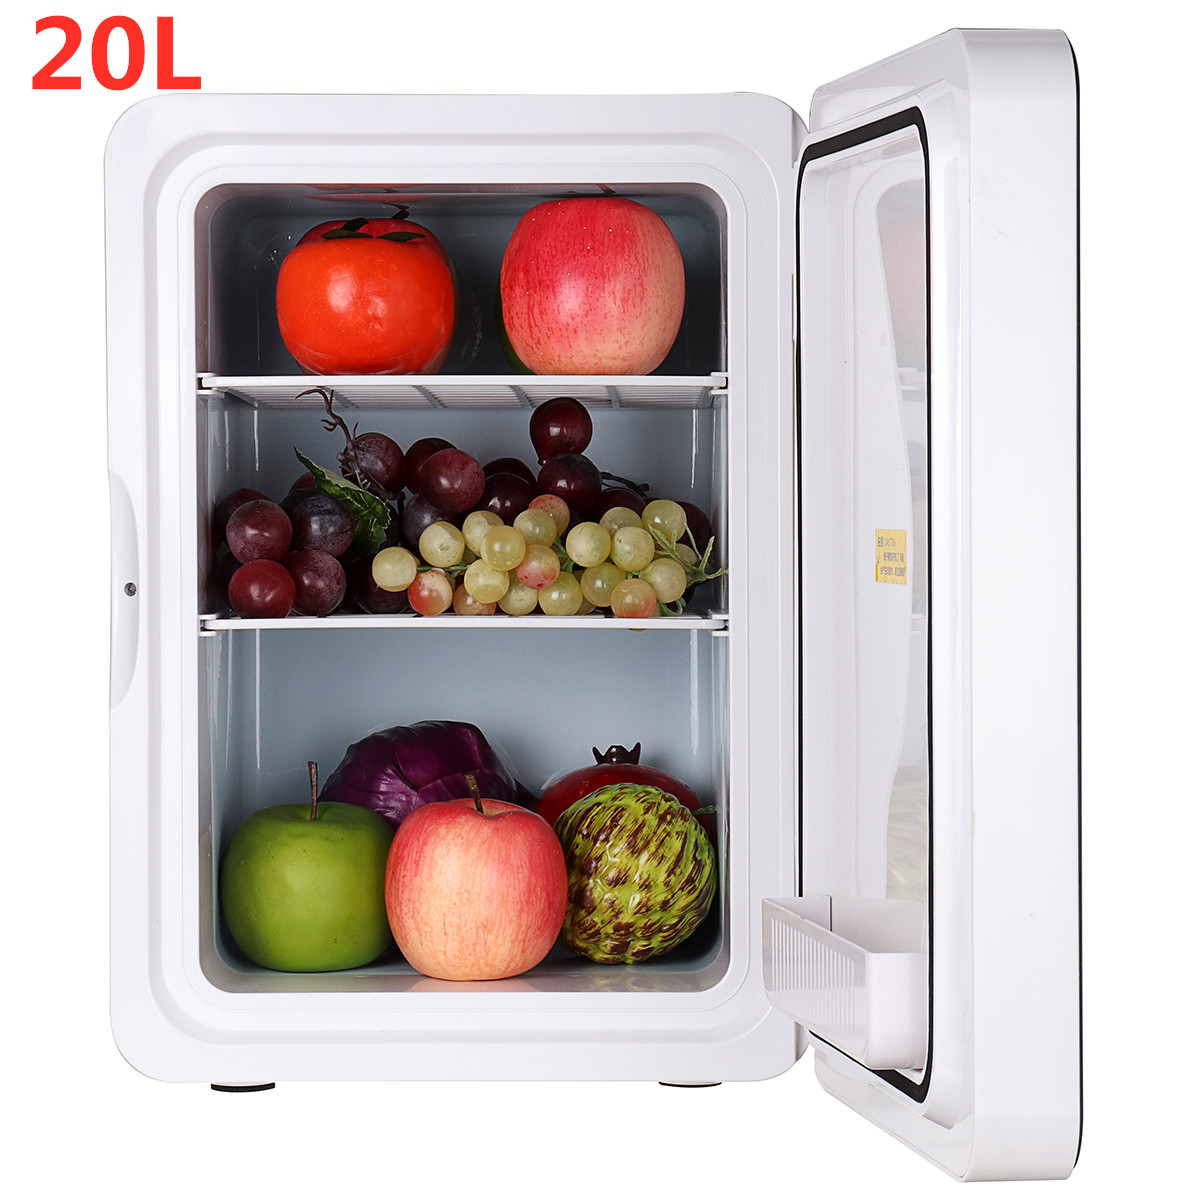 Portable 20L Refrigerator Dual-Use Home Fridge Mini Refrigerators 12V 56W Ultra Quiet Cooling Heating Box Fridge For Travel